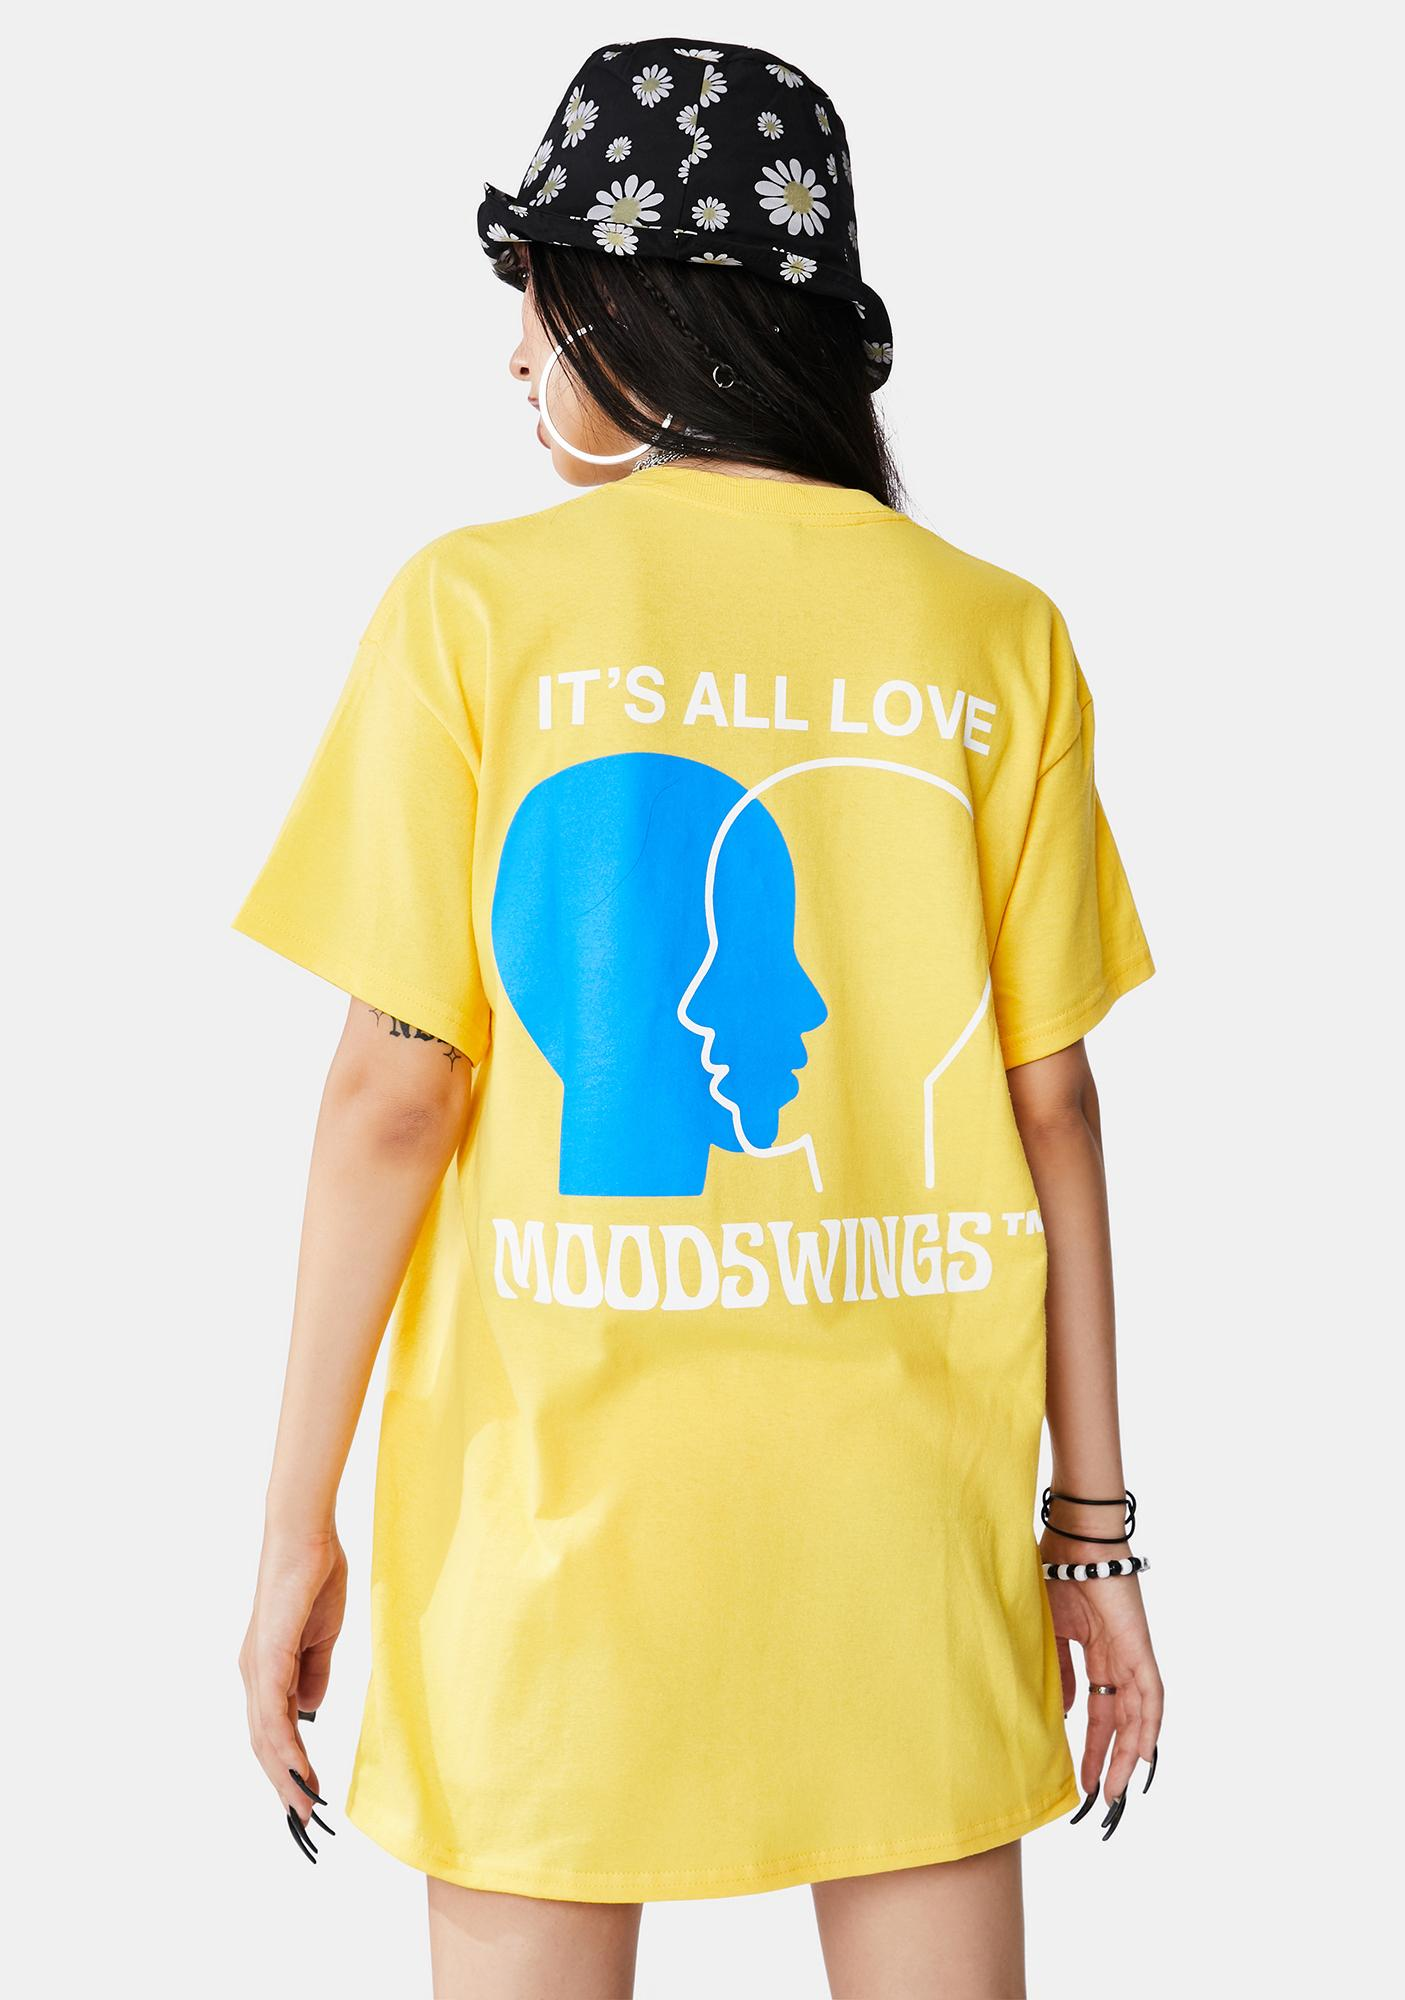 MOODSWINGS It's All Love Short Sleeve Graphic Tee